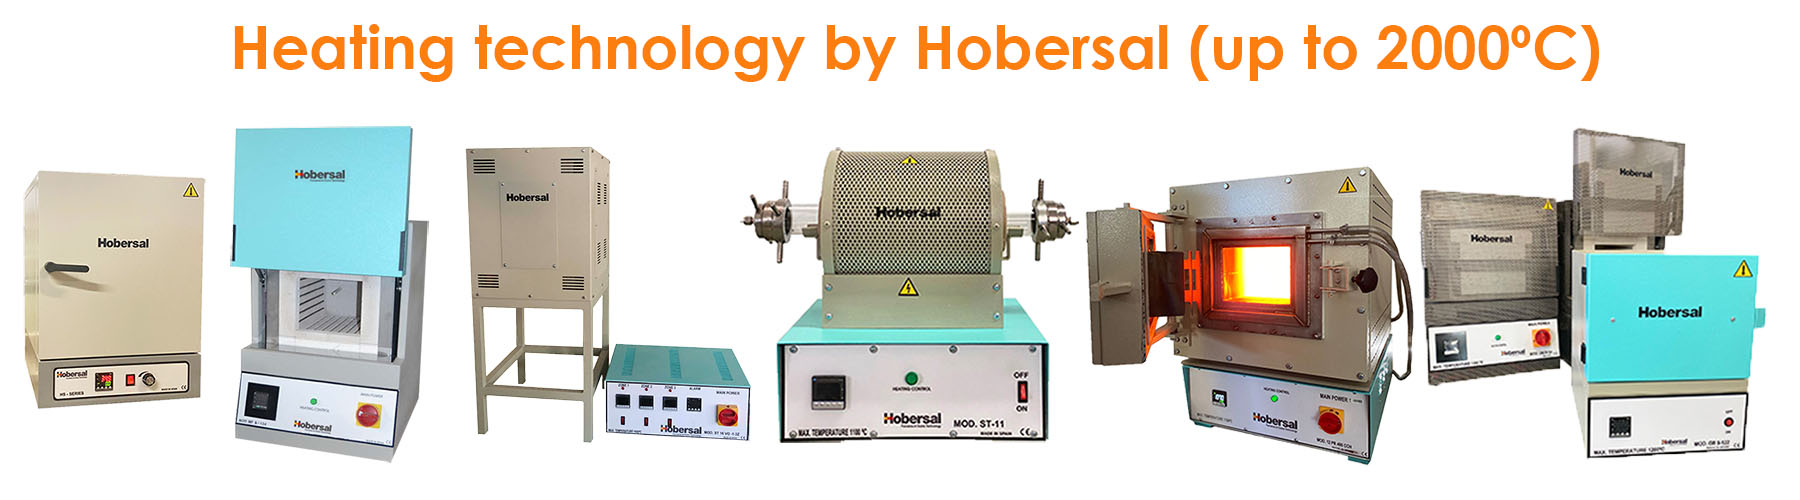 Hobersal furnaces and ovens